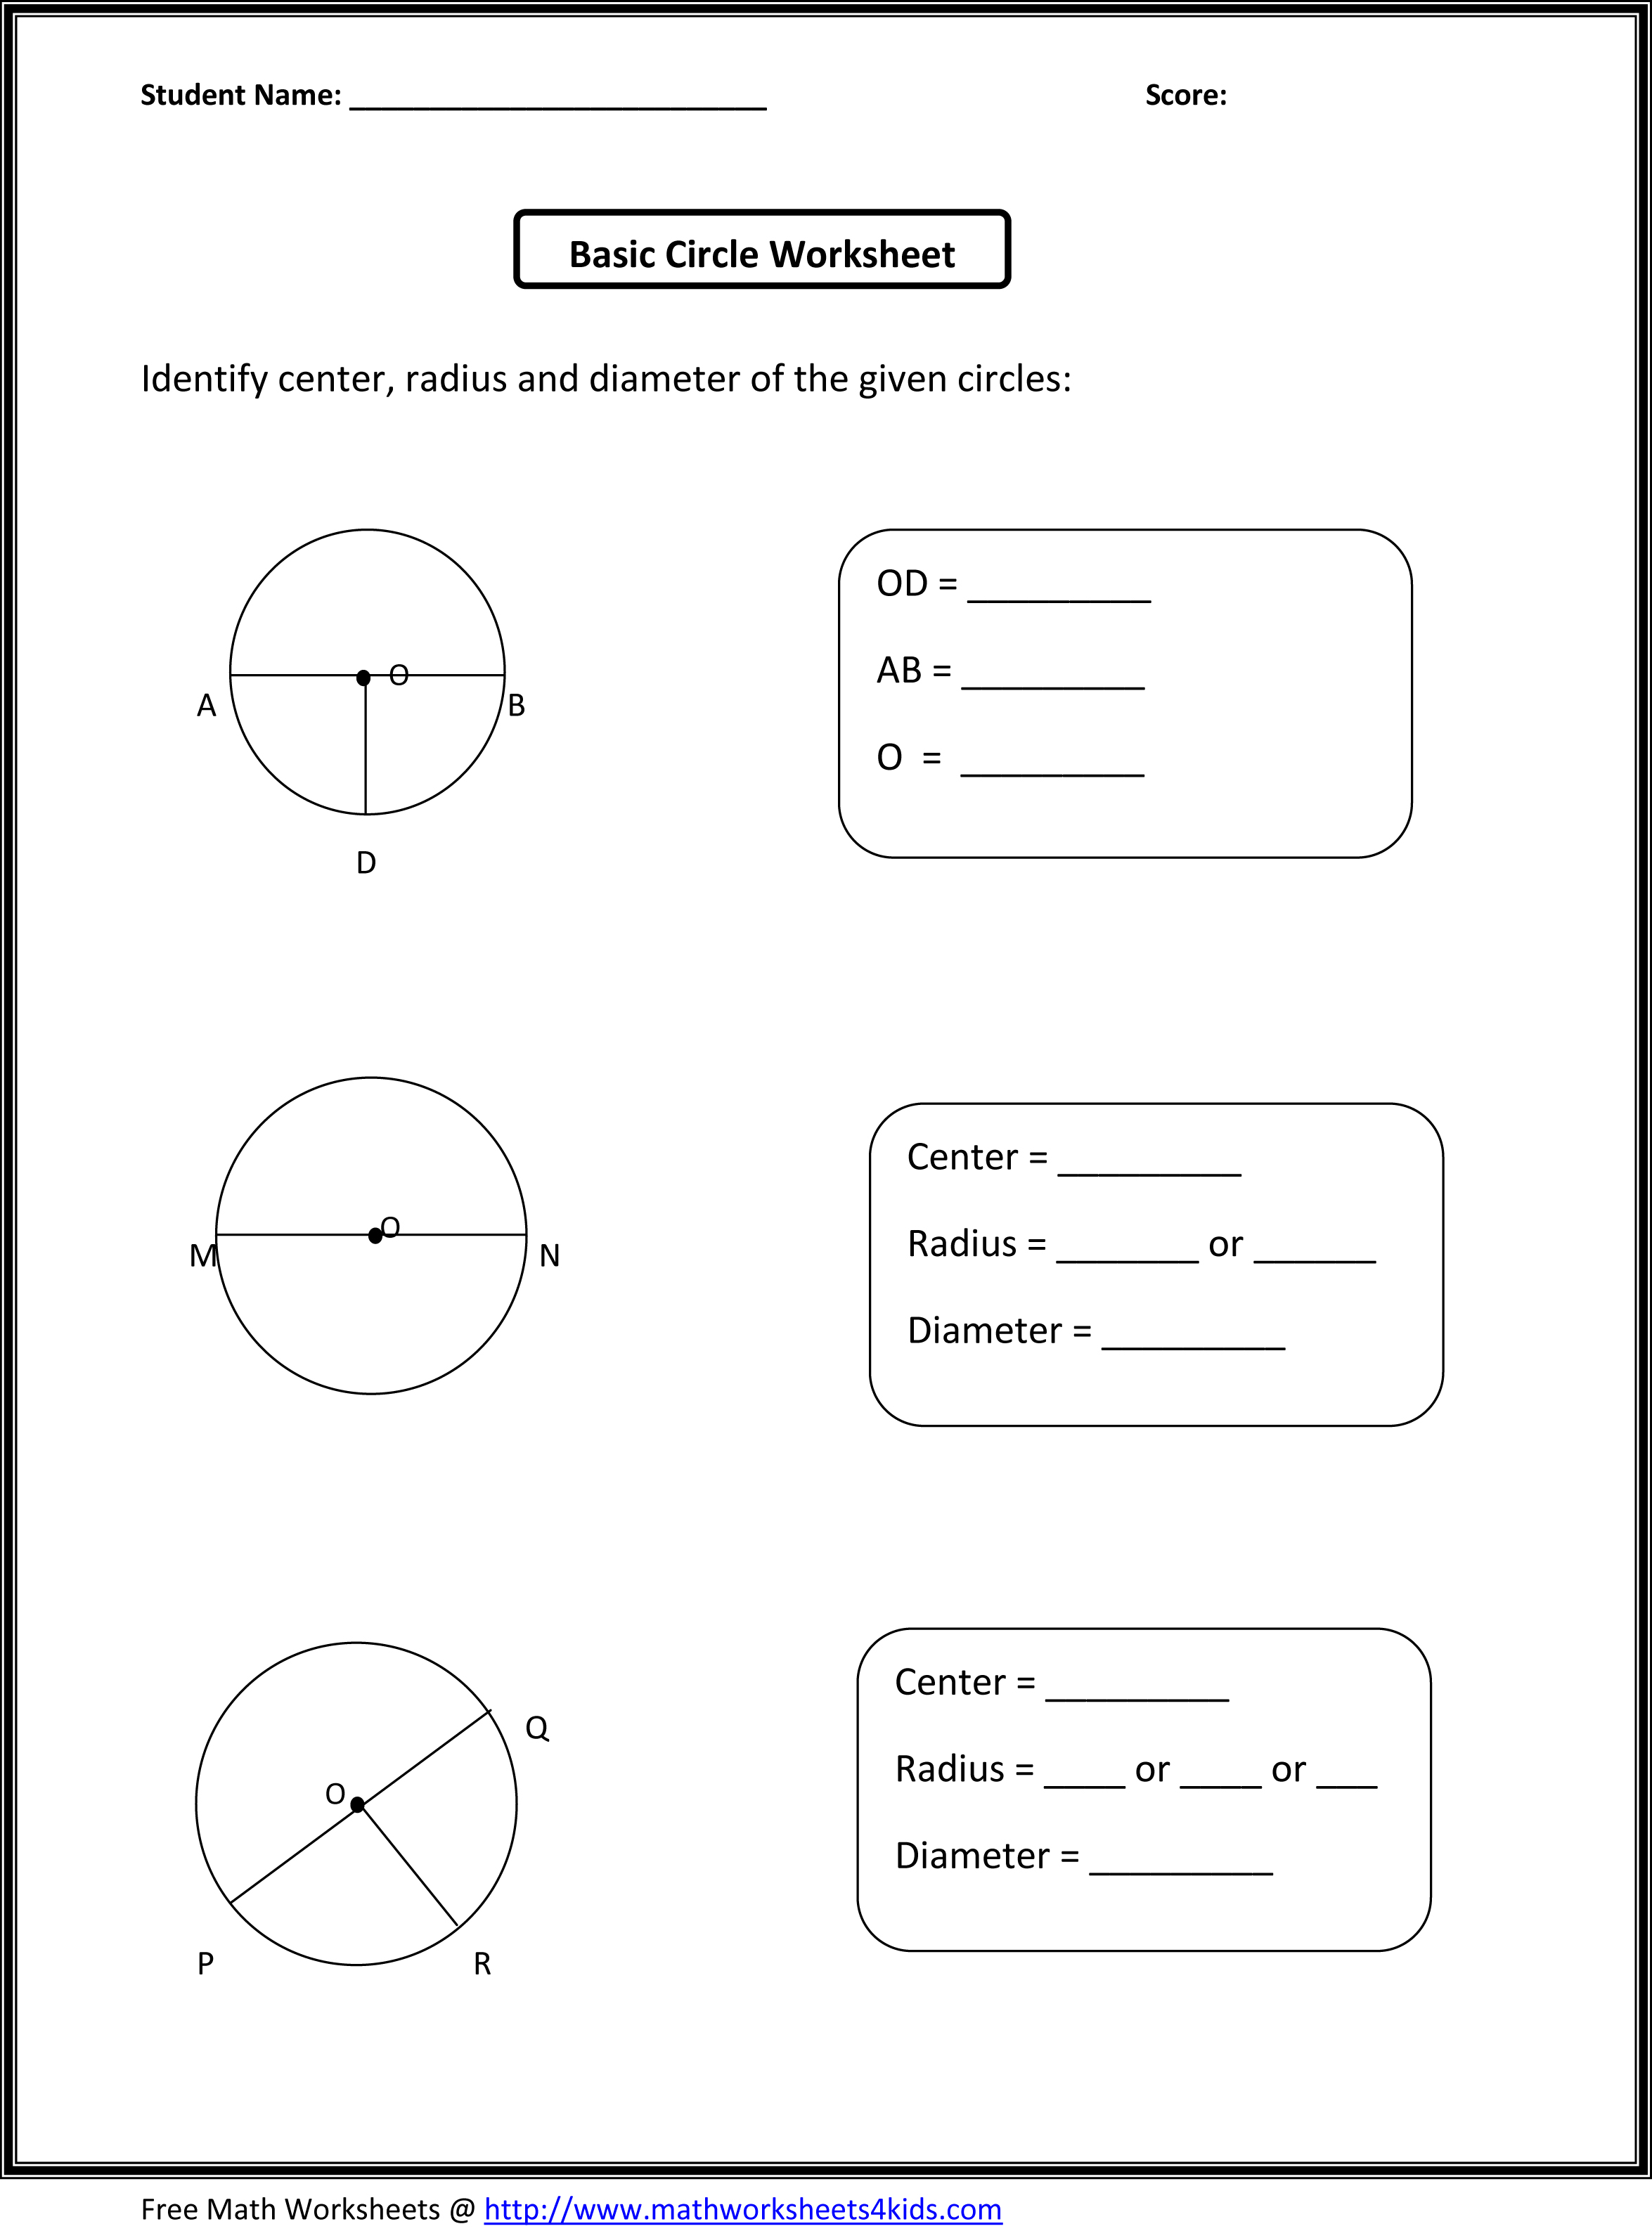 Free Worksheet Math Practice Worksheets For 3rd Grade worksheet 500384 math practice worksheets for 3rd grade problems graders grade